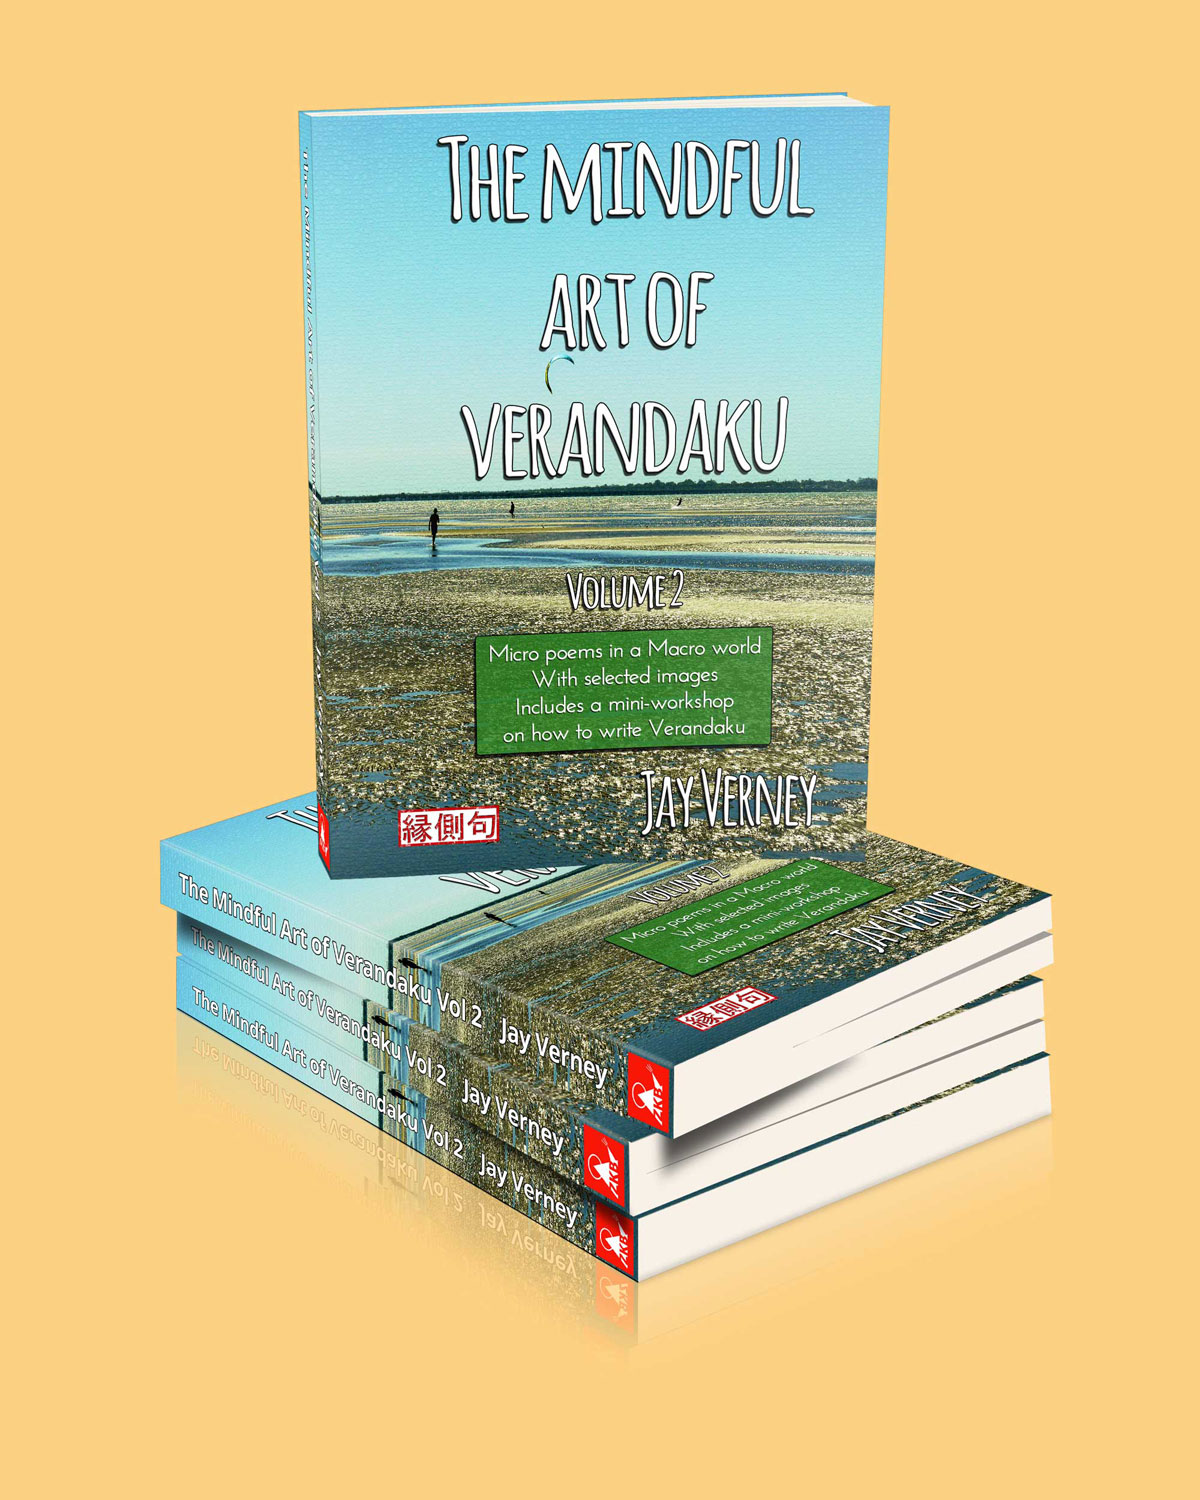 Book cover image for The Mindful Art of Verandaku Volume 2 by Jay Verney